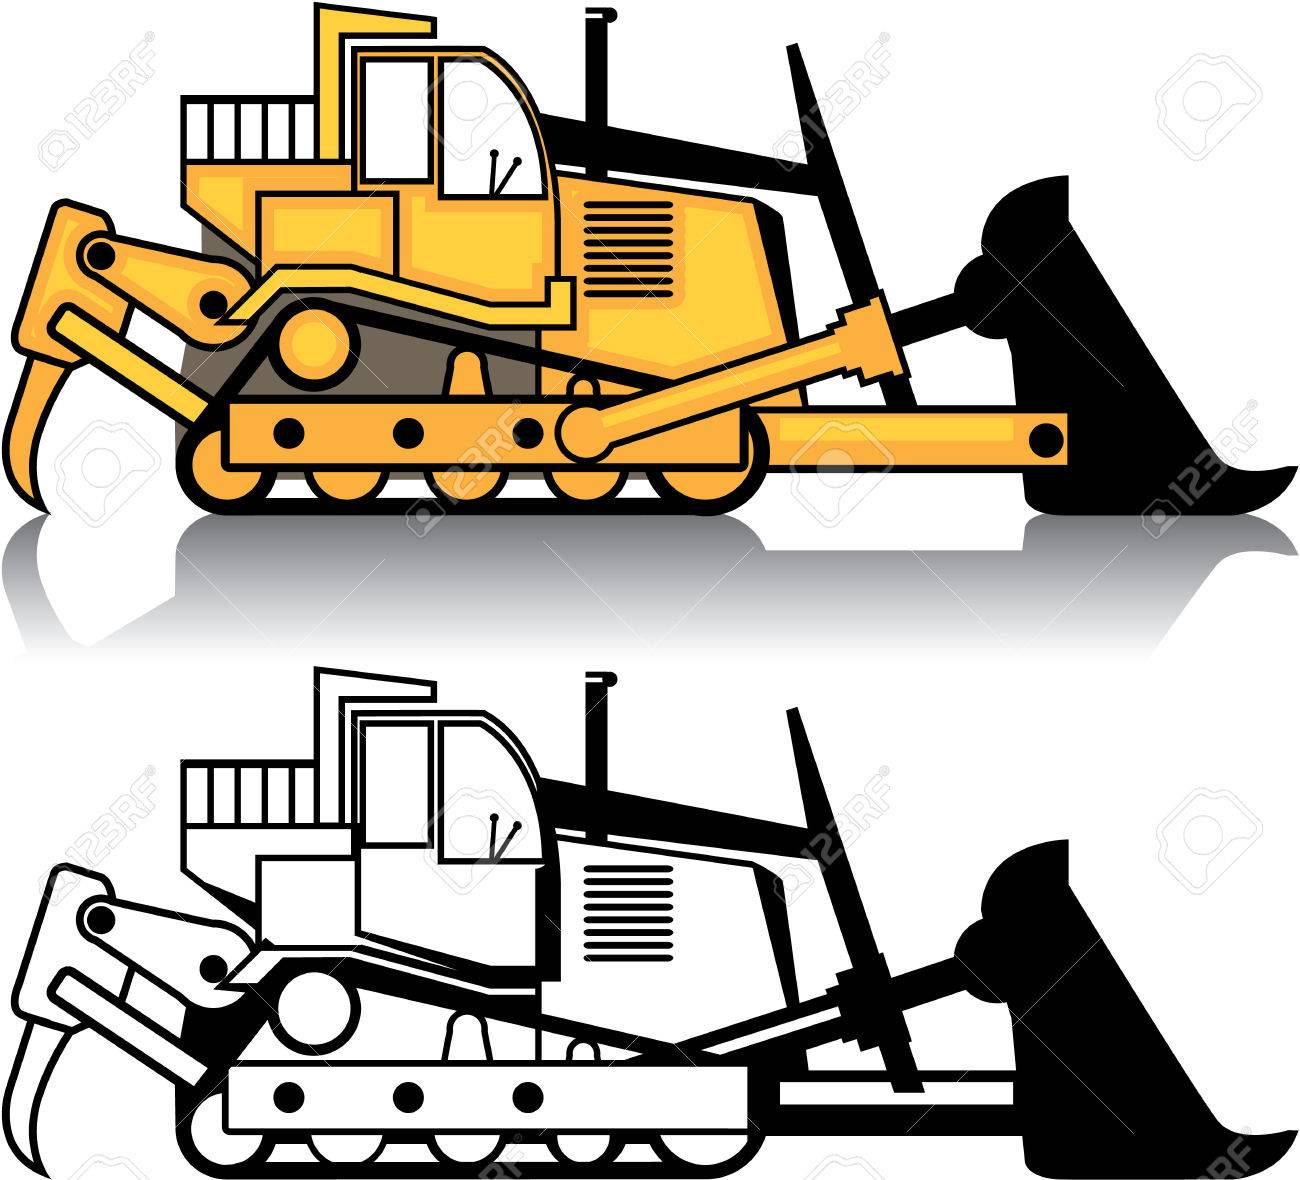 dozer vehicle vector illustration clip art image royalty free rh 123rf com Bulldozer Clip Art Black and White dozer clip art free images